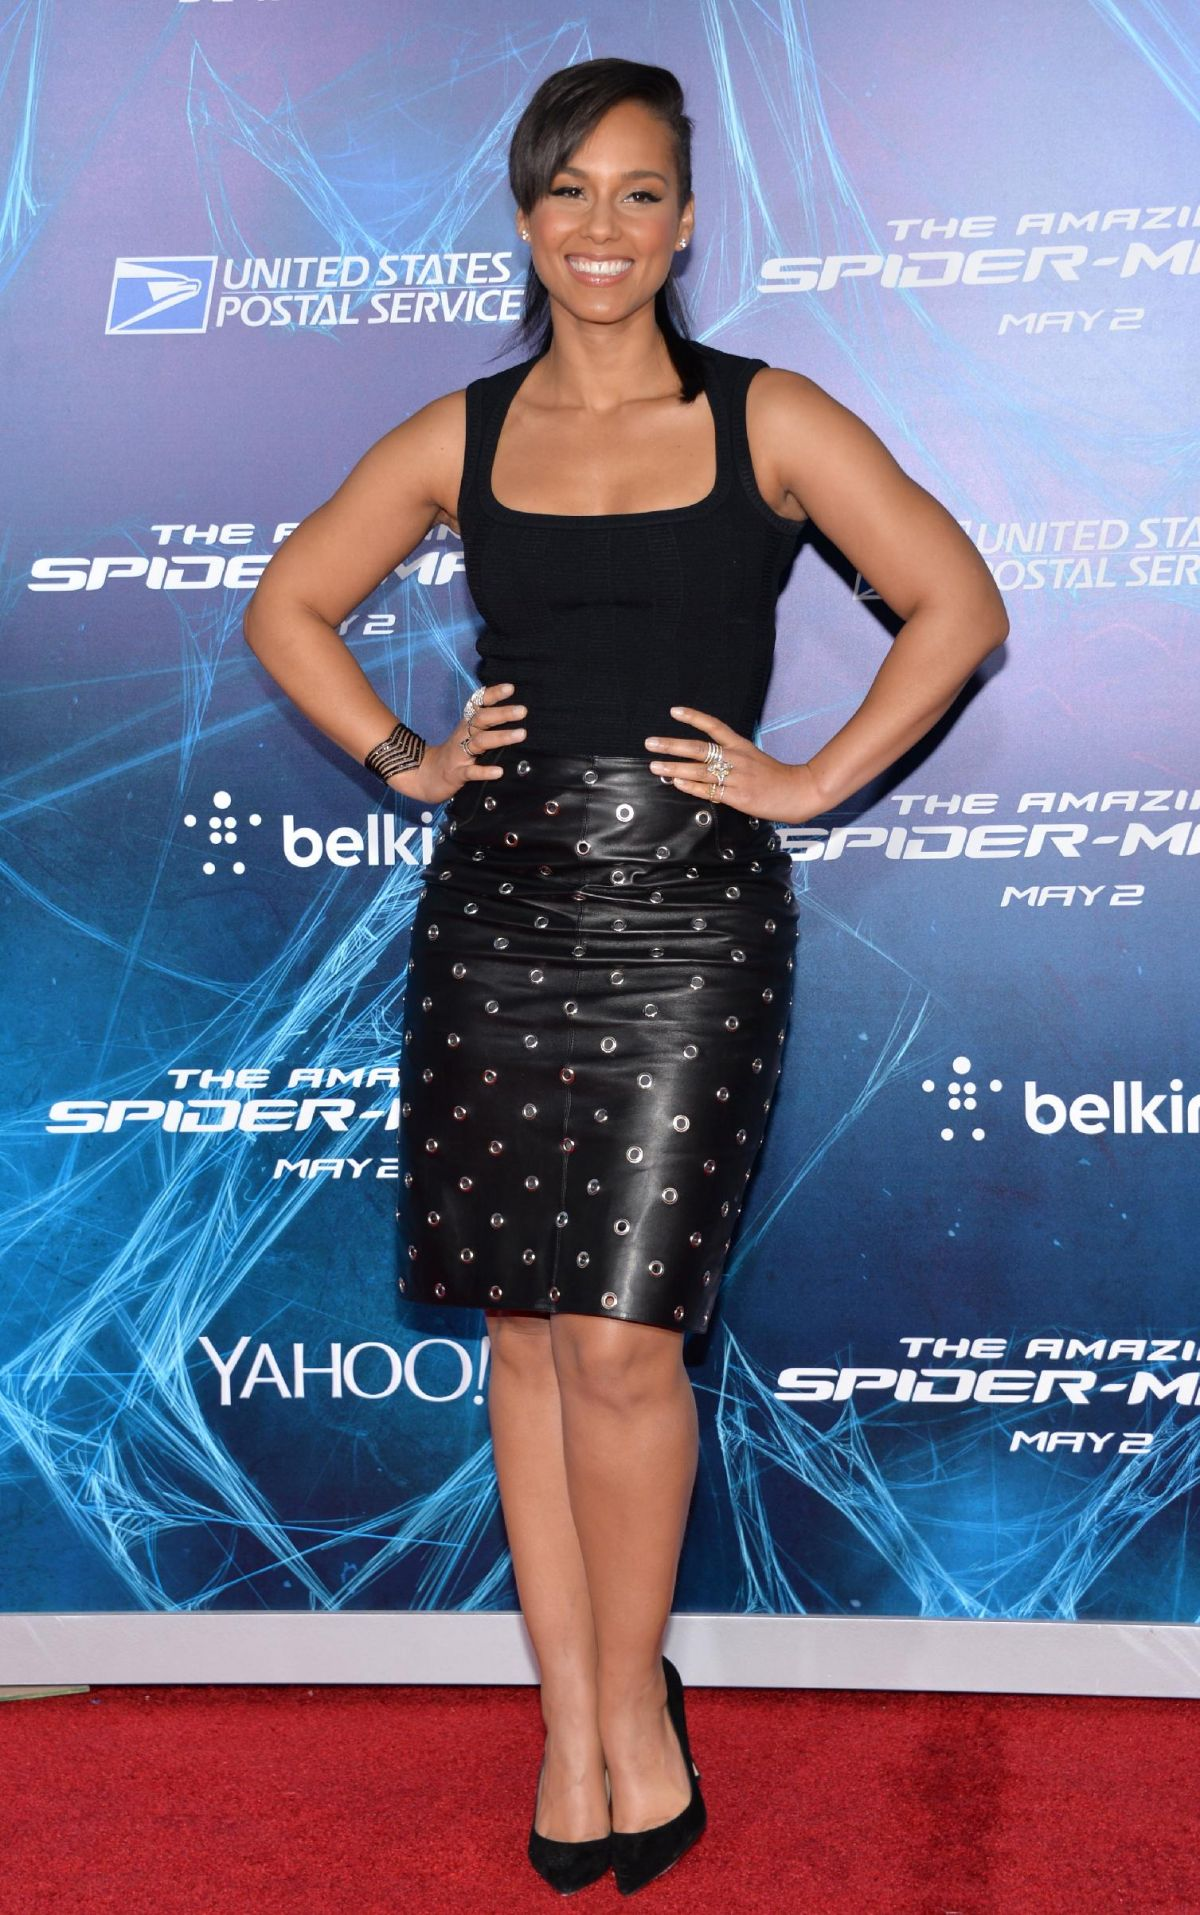 ALICIA KEYS at The Amazing Spider-man 2 Premiere in New York